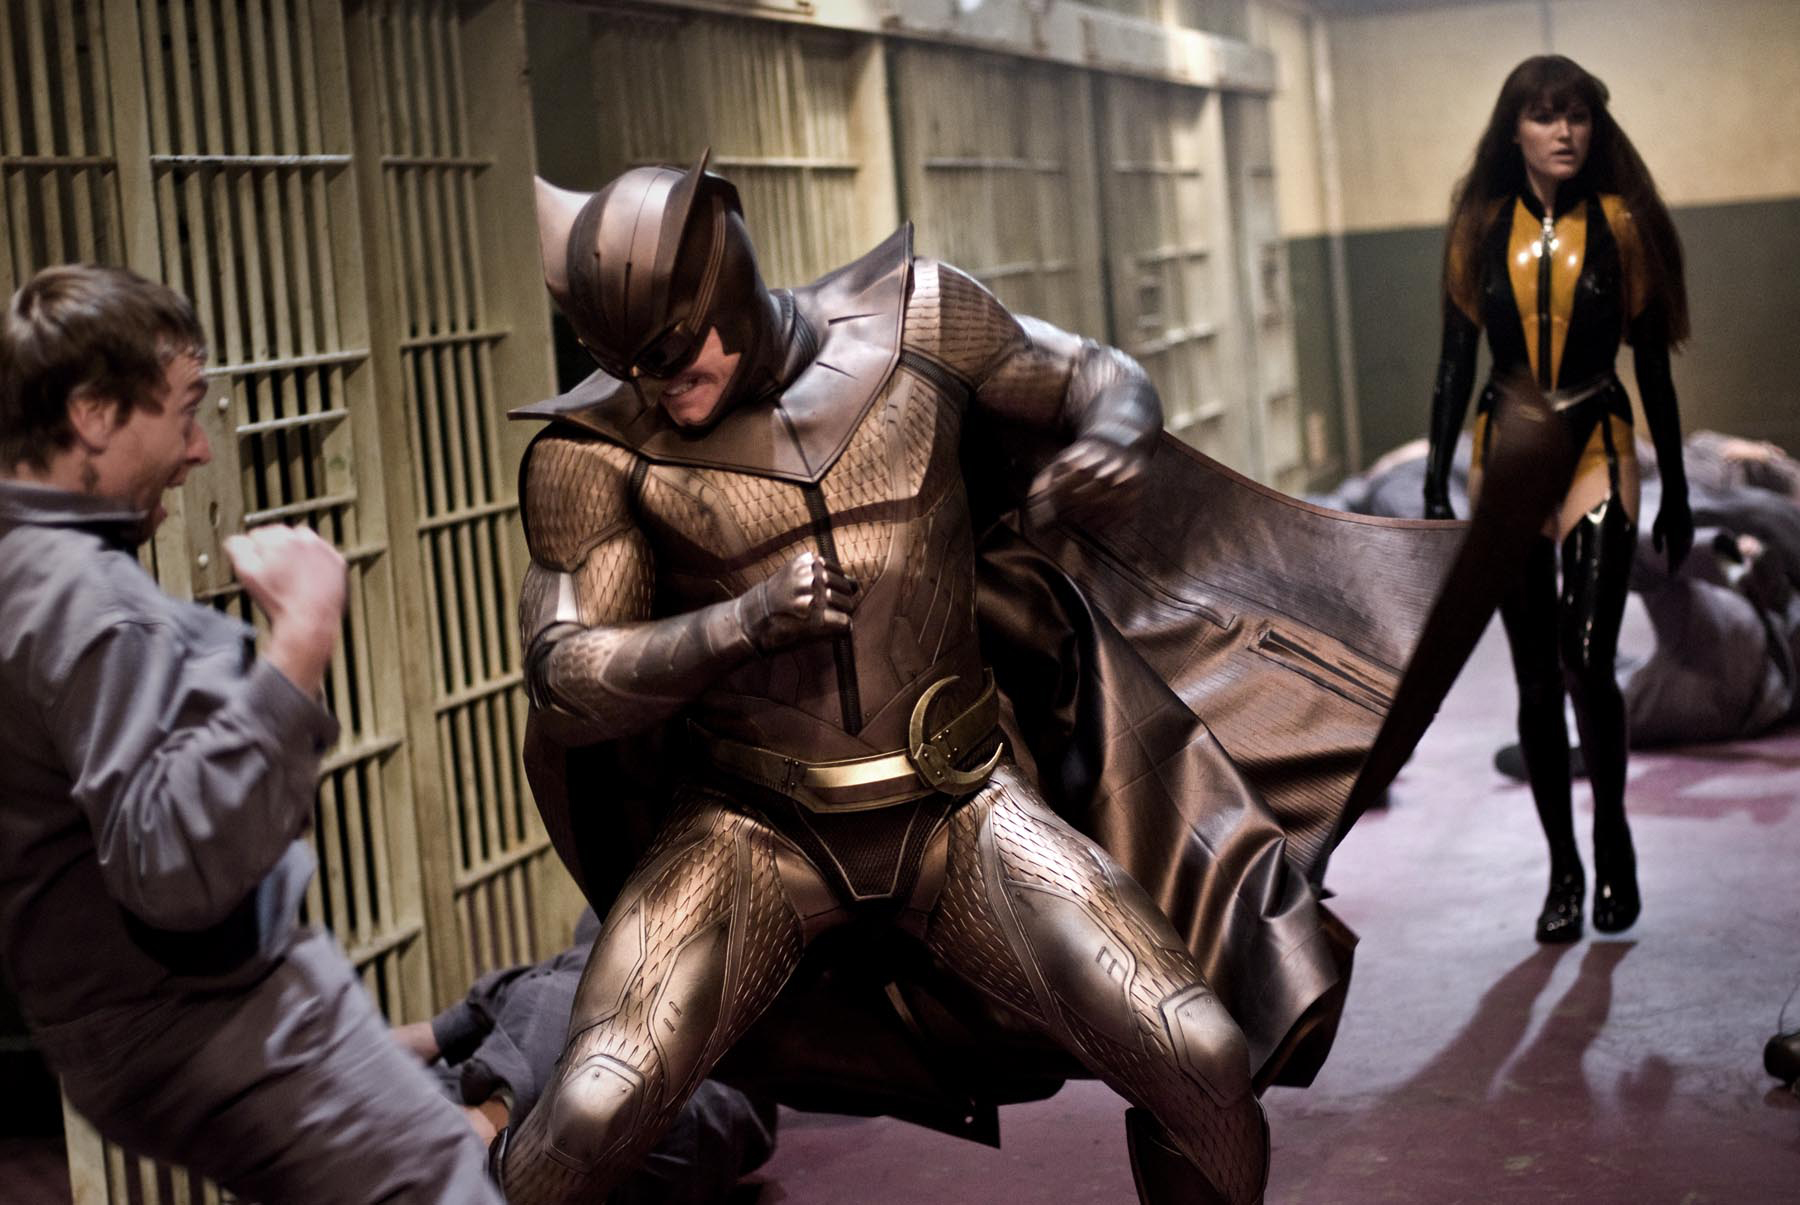 watchmen 2009 nite owl fights a prison guard as laurie walks up behind him